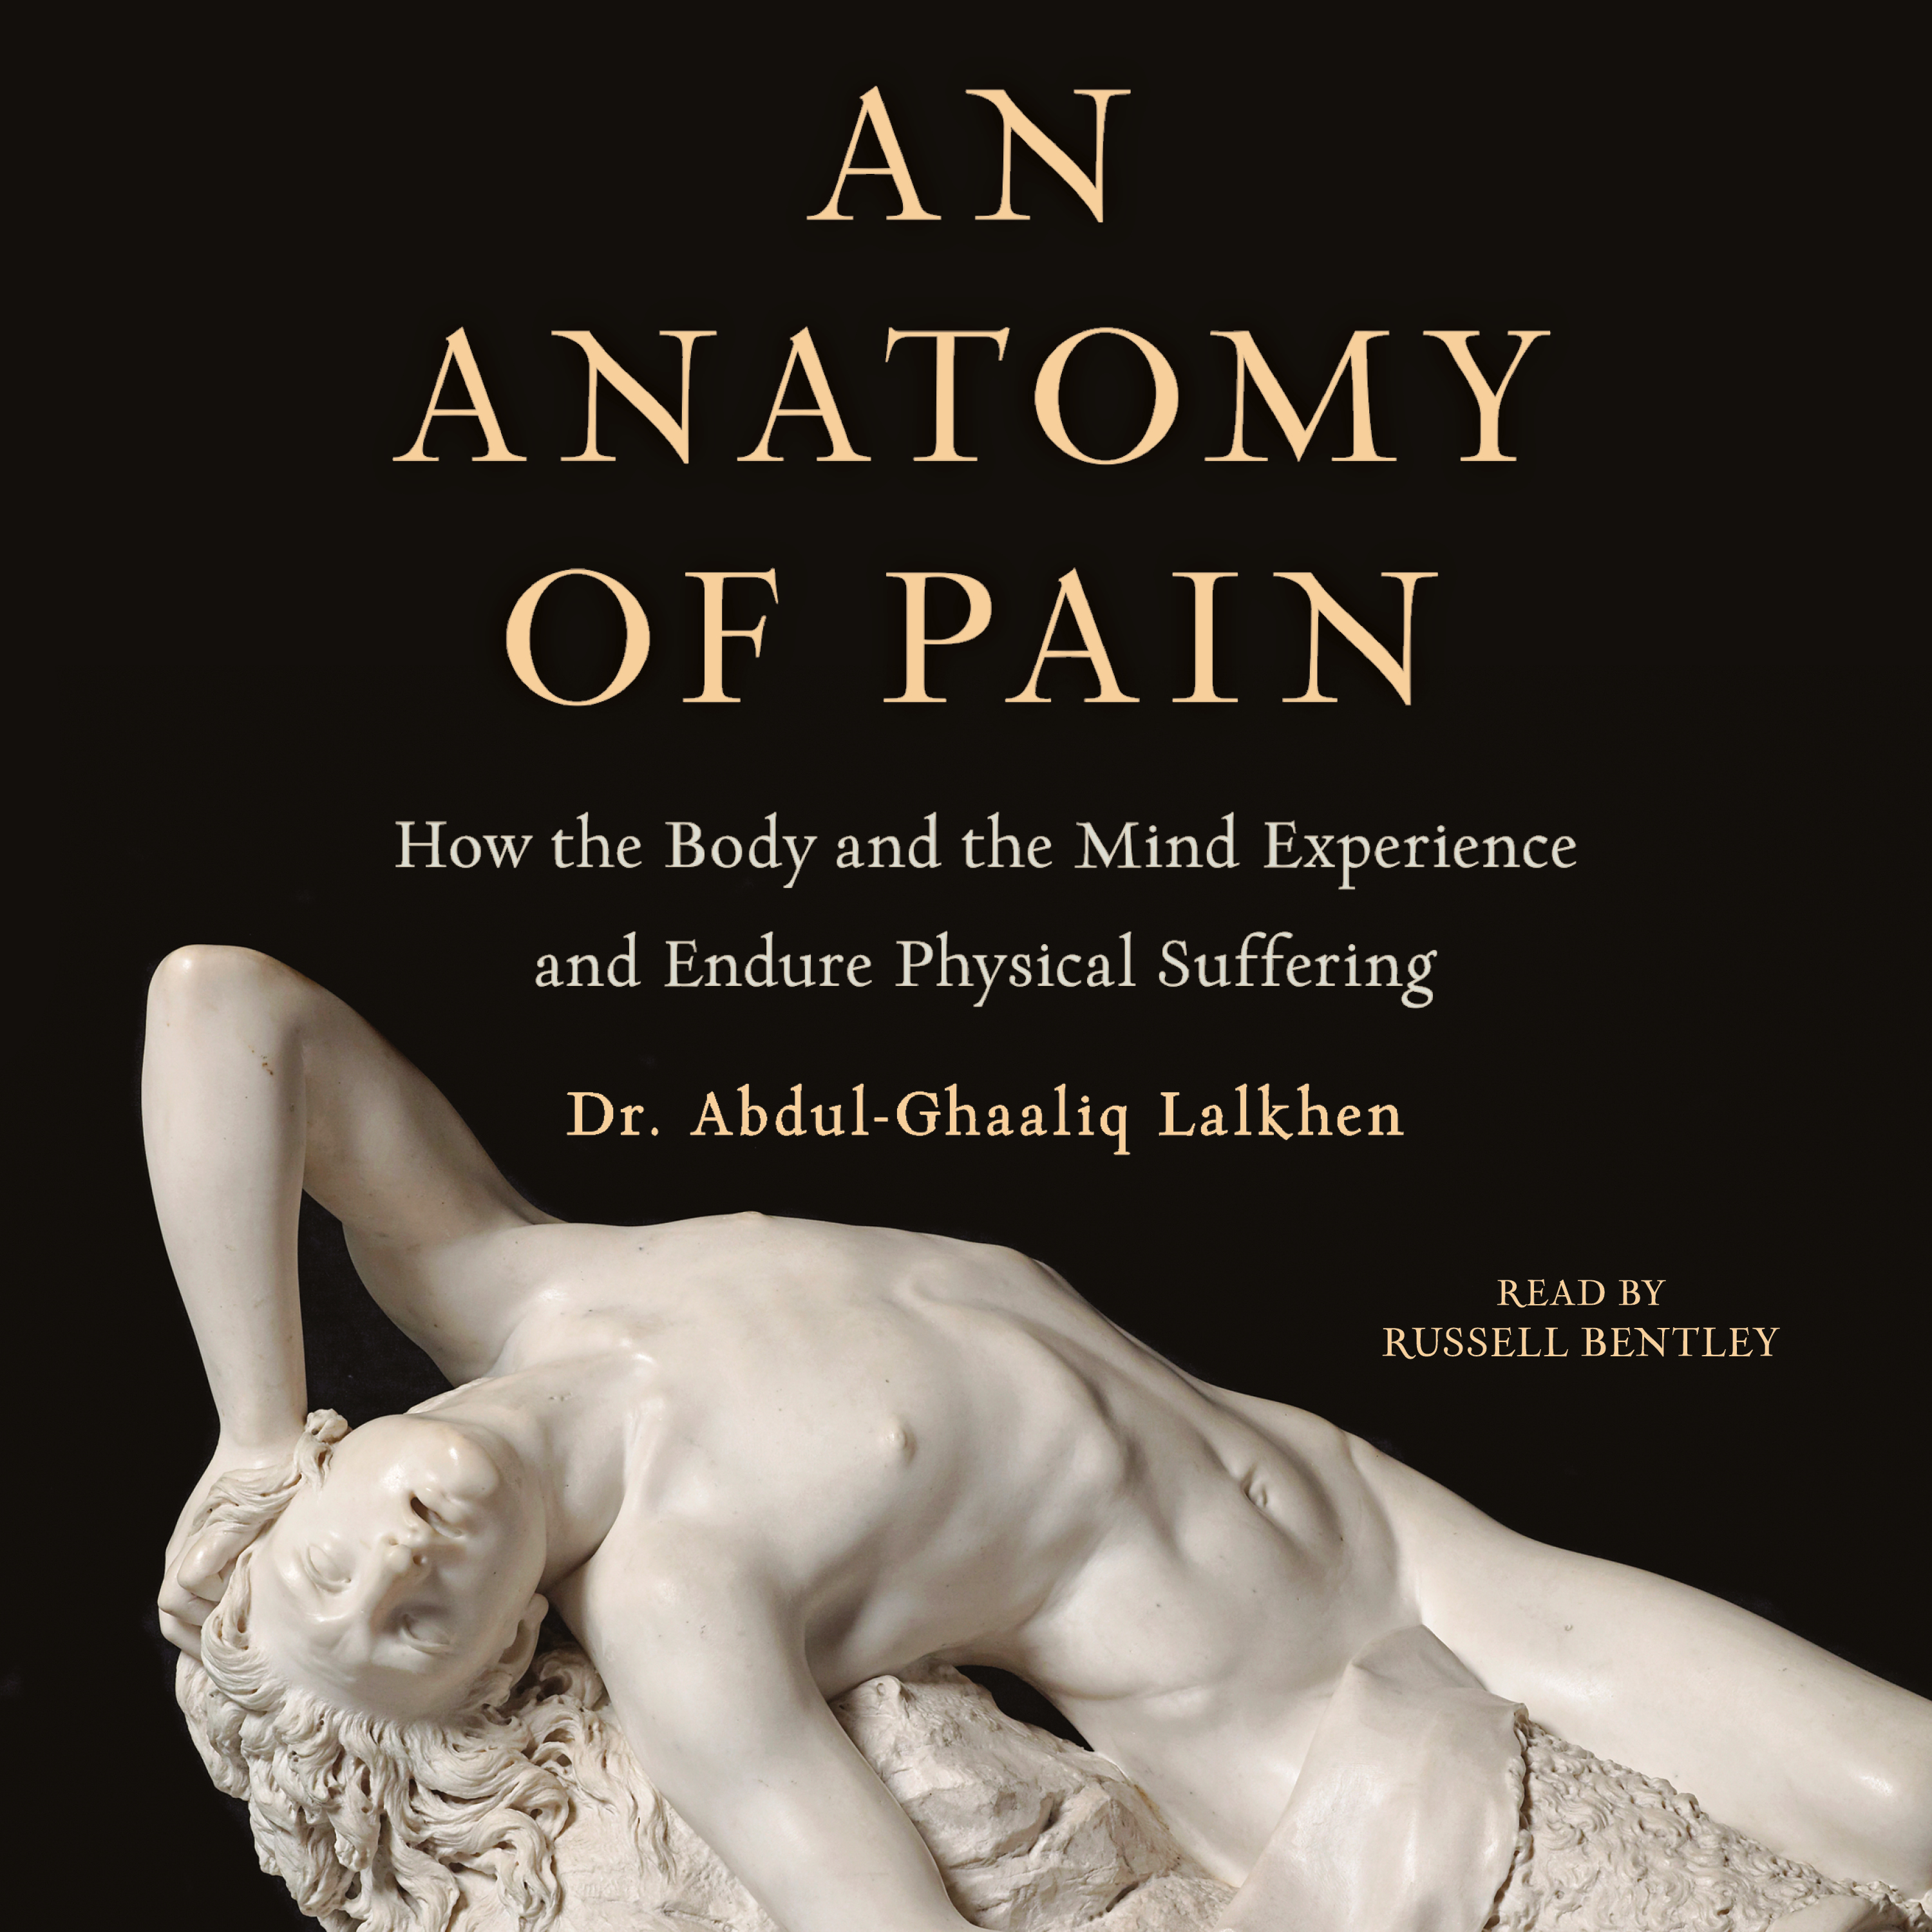 An Anatomy of Pain